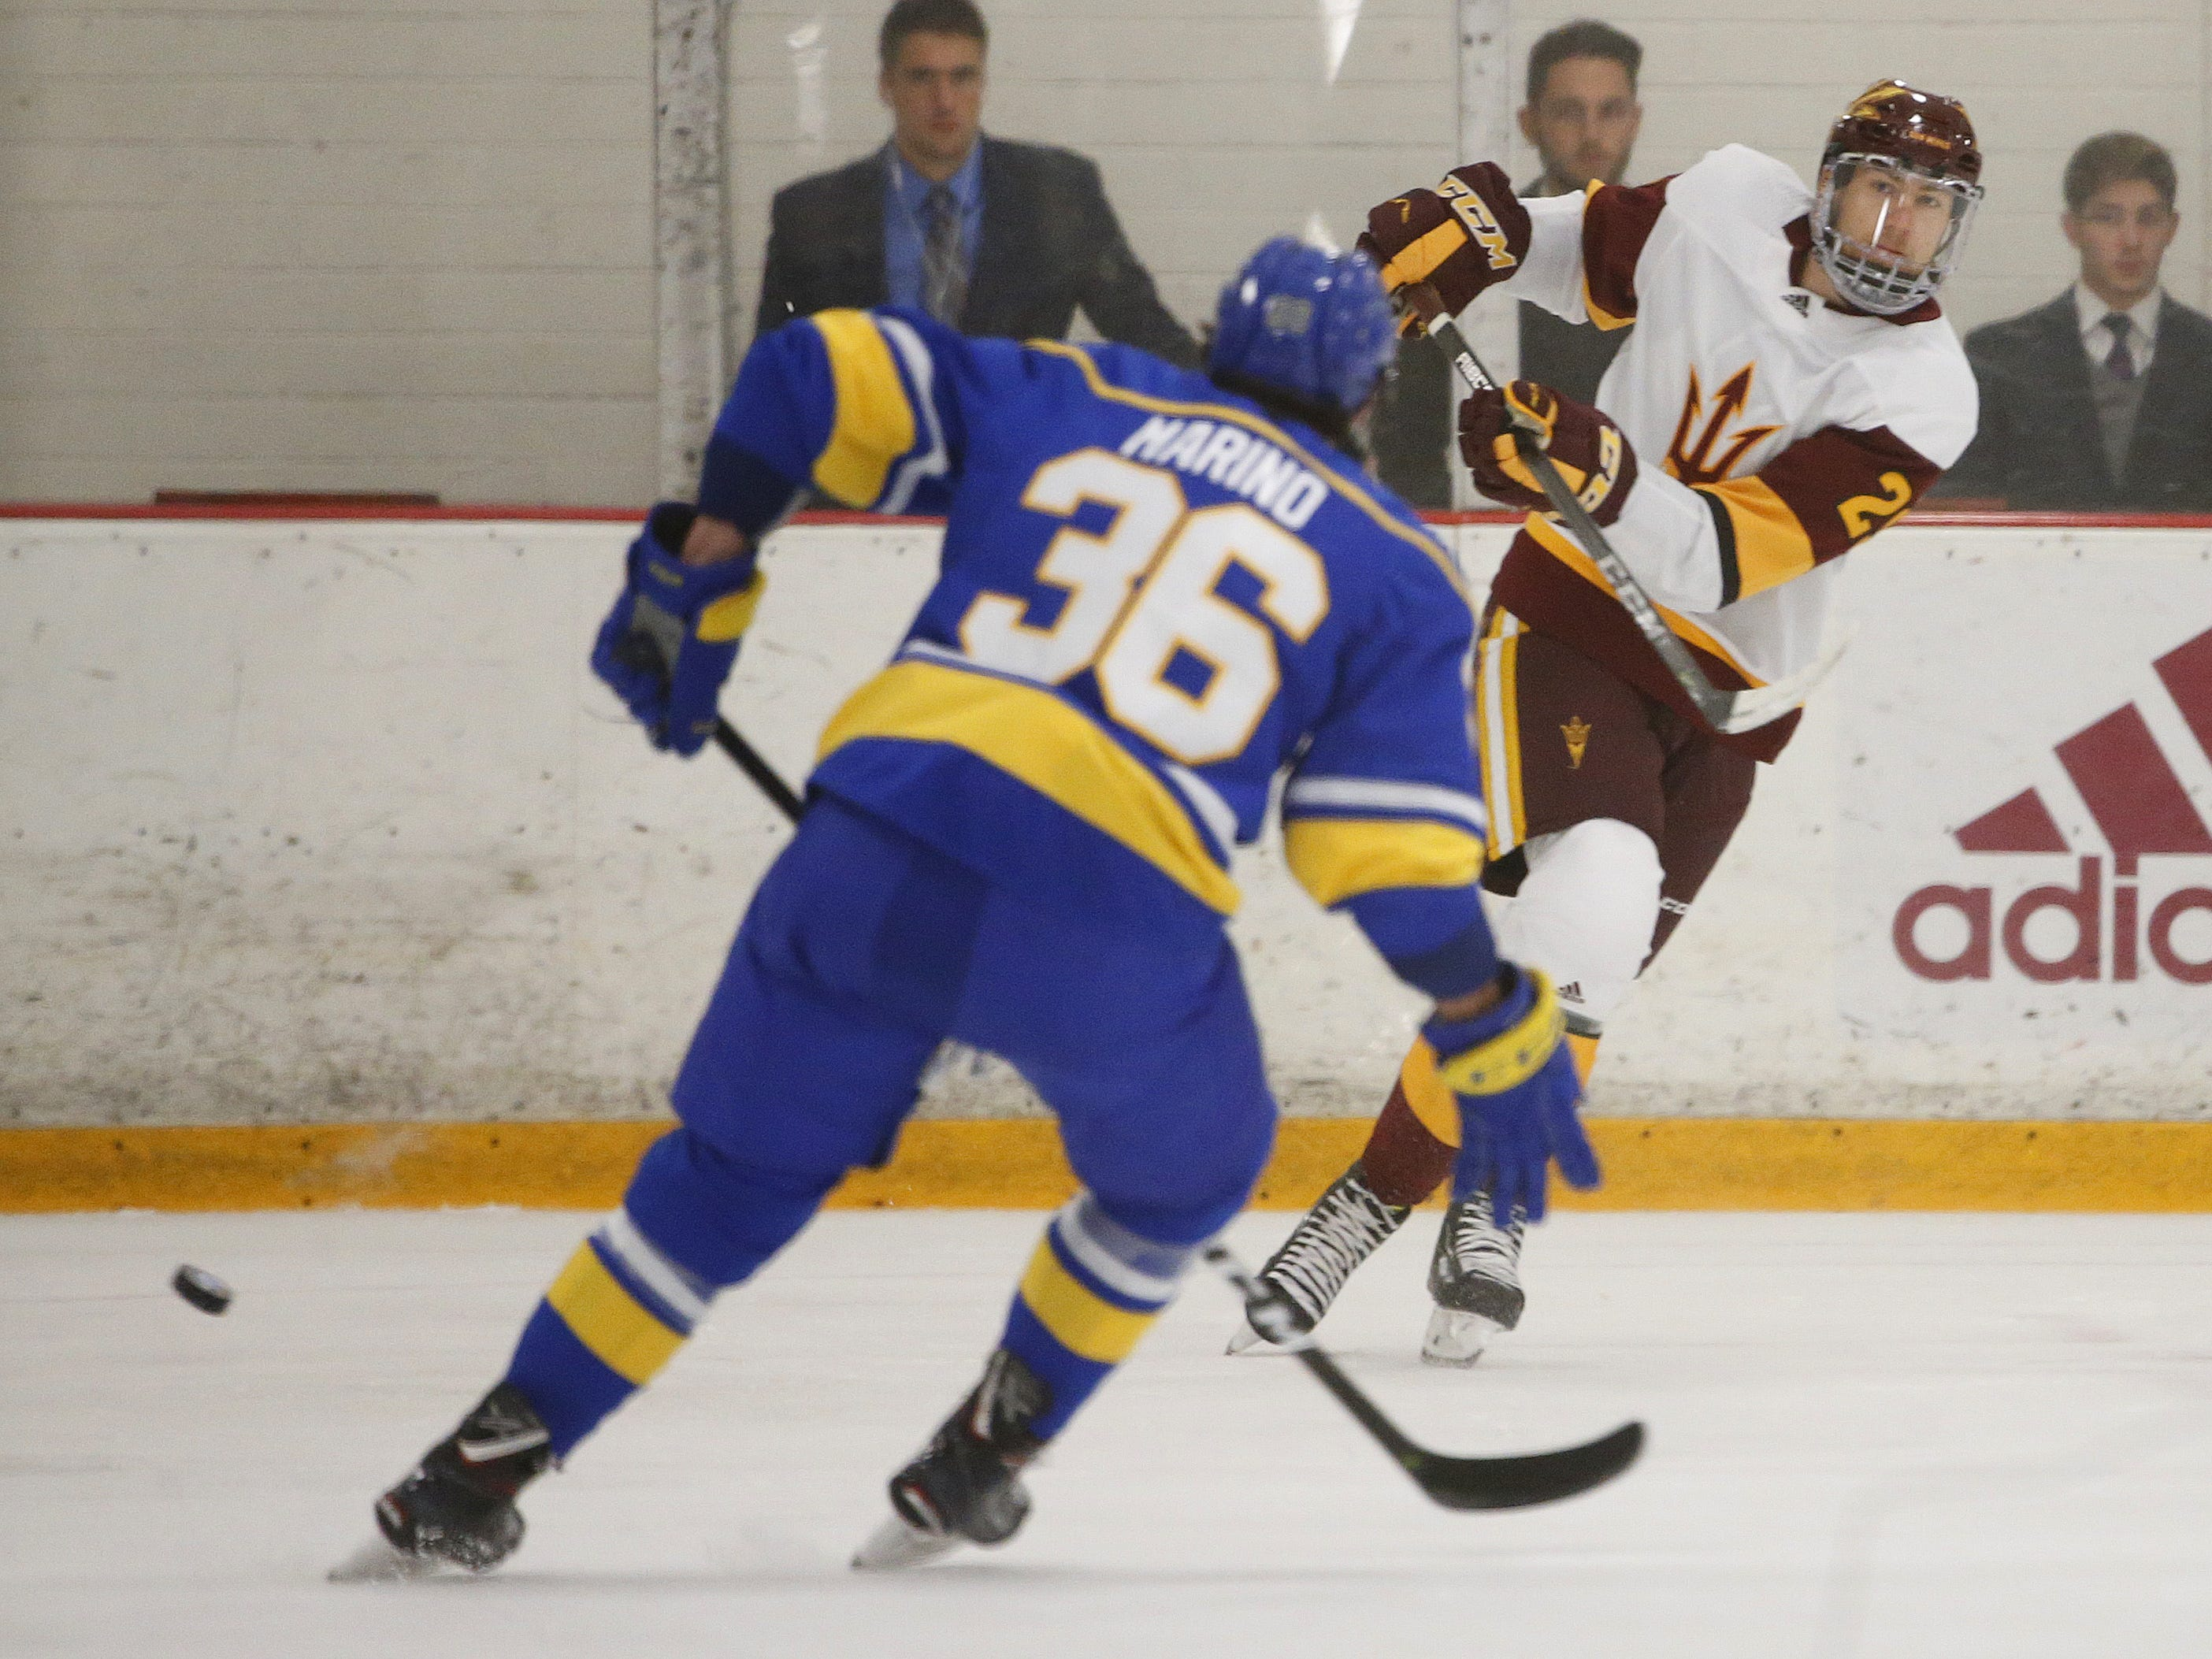 ASU's PJ Marrocco (25) passes against Alaska's Kyle Marino (36) at Oceanside Ice Arena in Tempe, Ariz. on October 7, 2018.